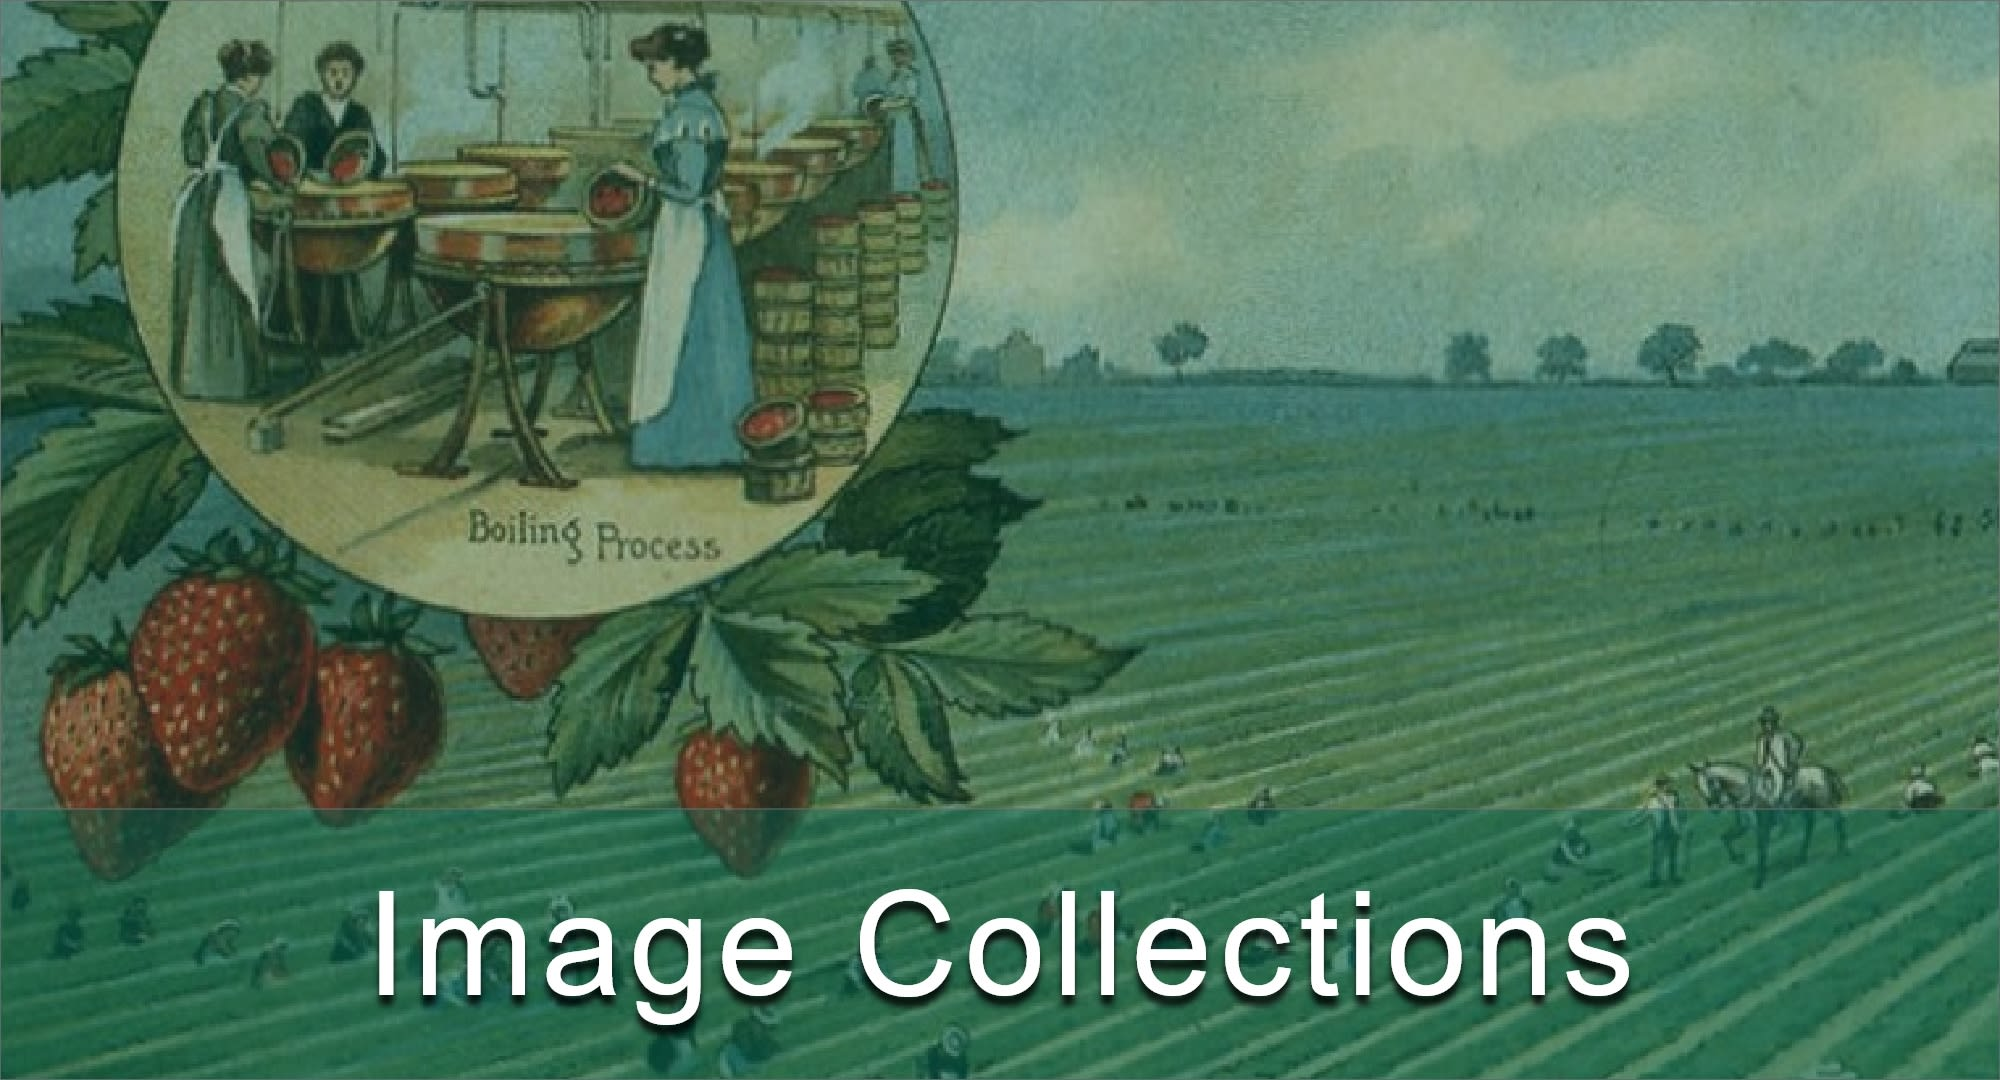 Click here to view the museum collections